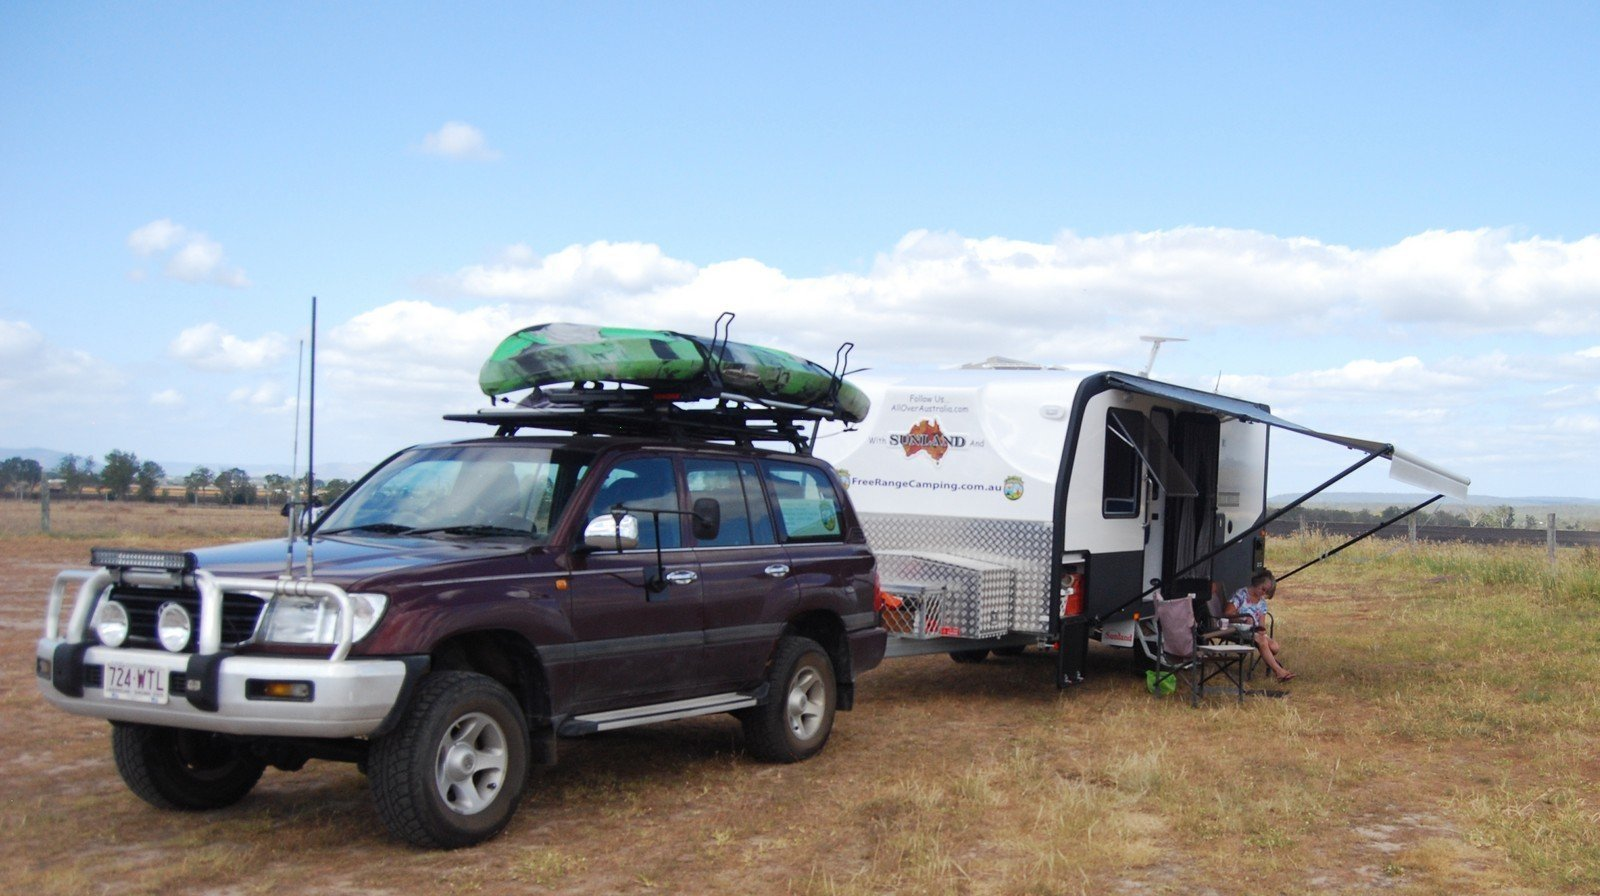 Our Rig at Lake Clarendon